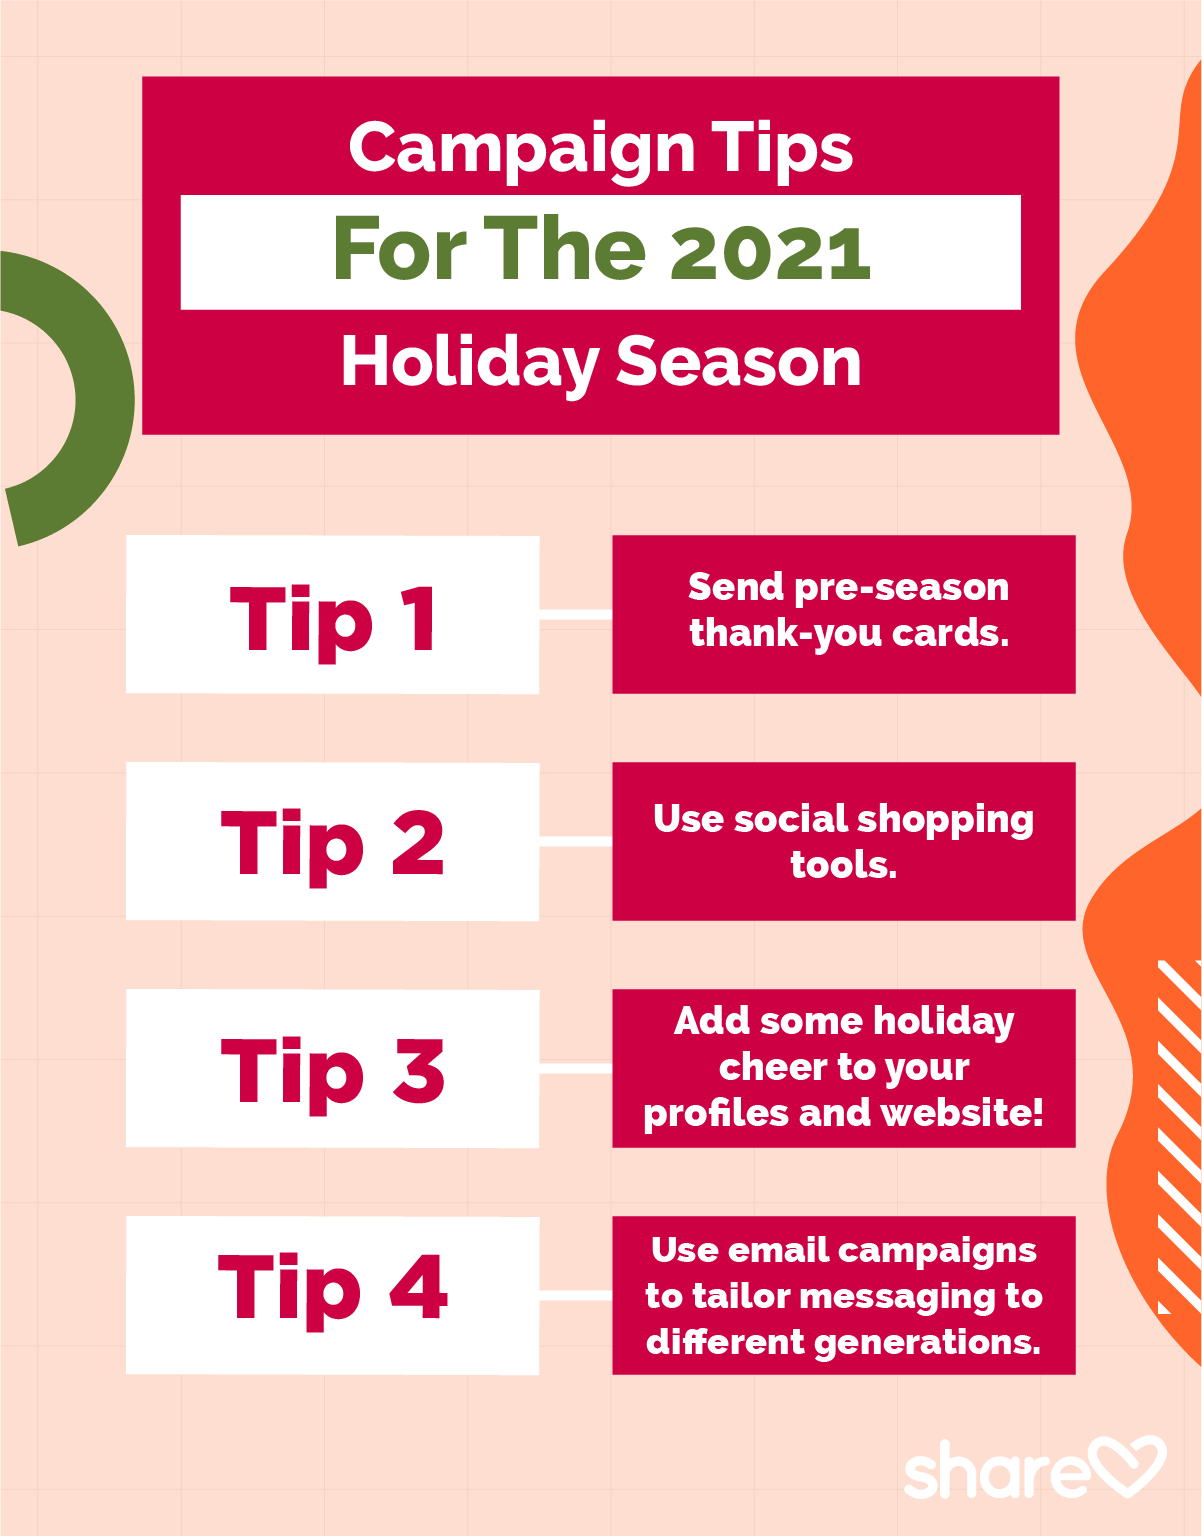 Campaign Tips for the 2021 Holiday Season (Bonus Content)